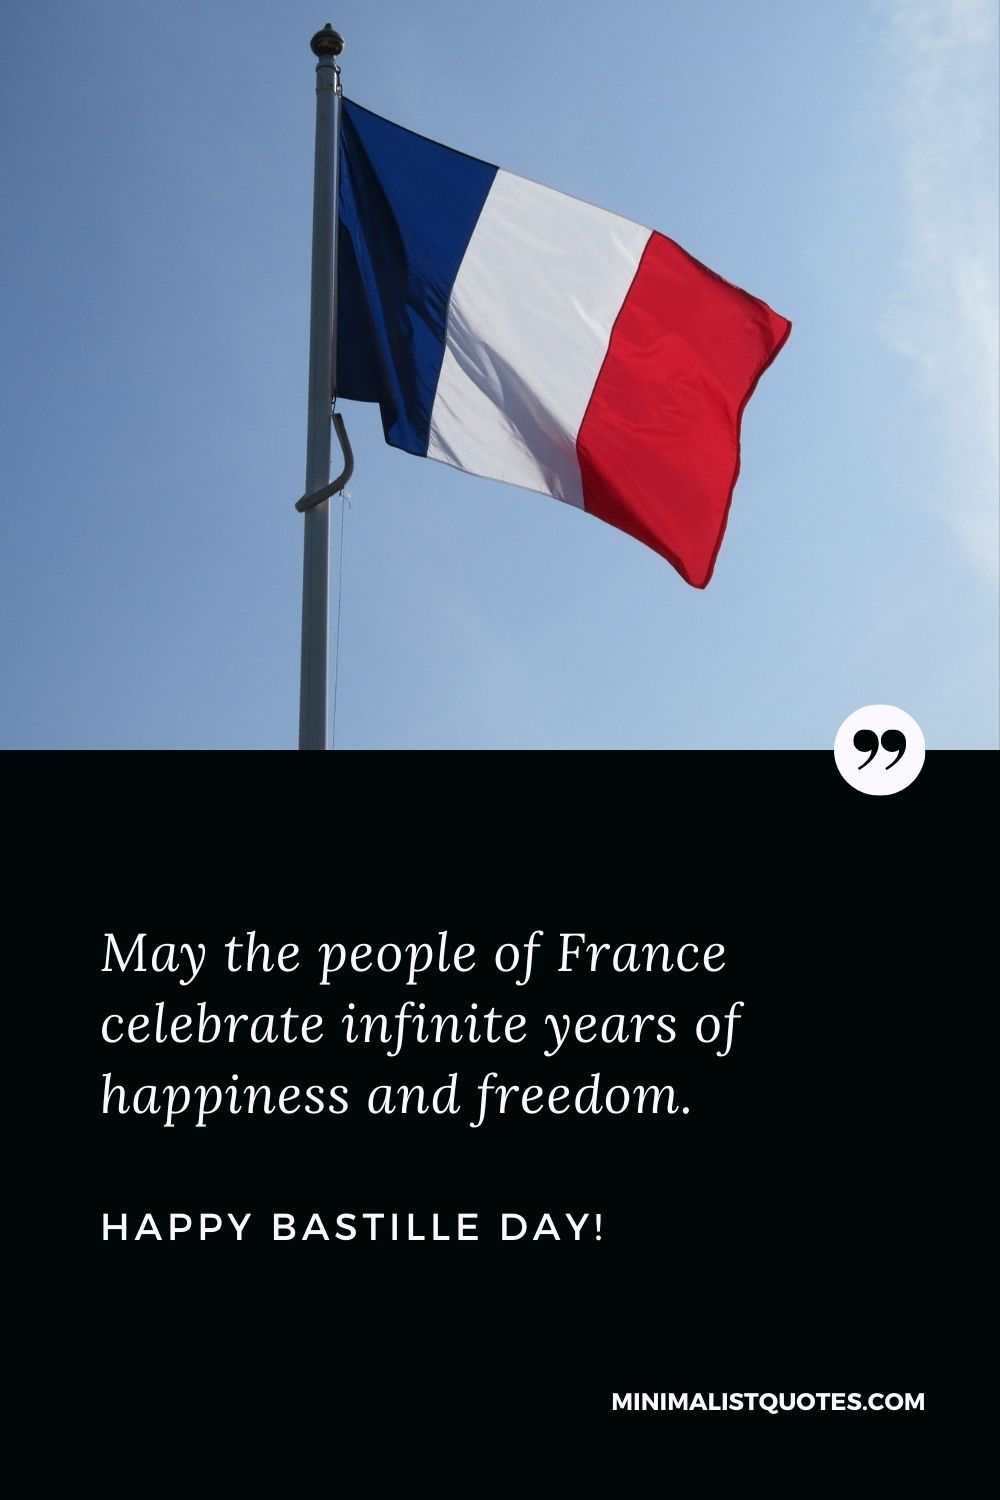 Happy Bastille Day Greetings: May the people of France celebrate infinite years of happiness and freedom.